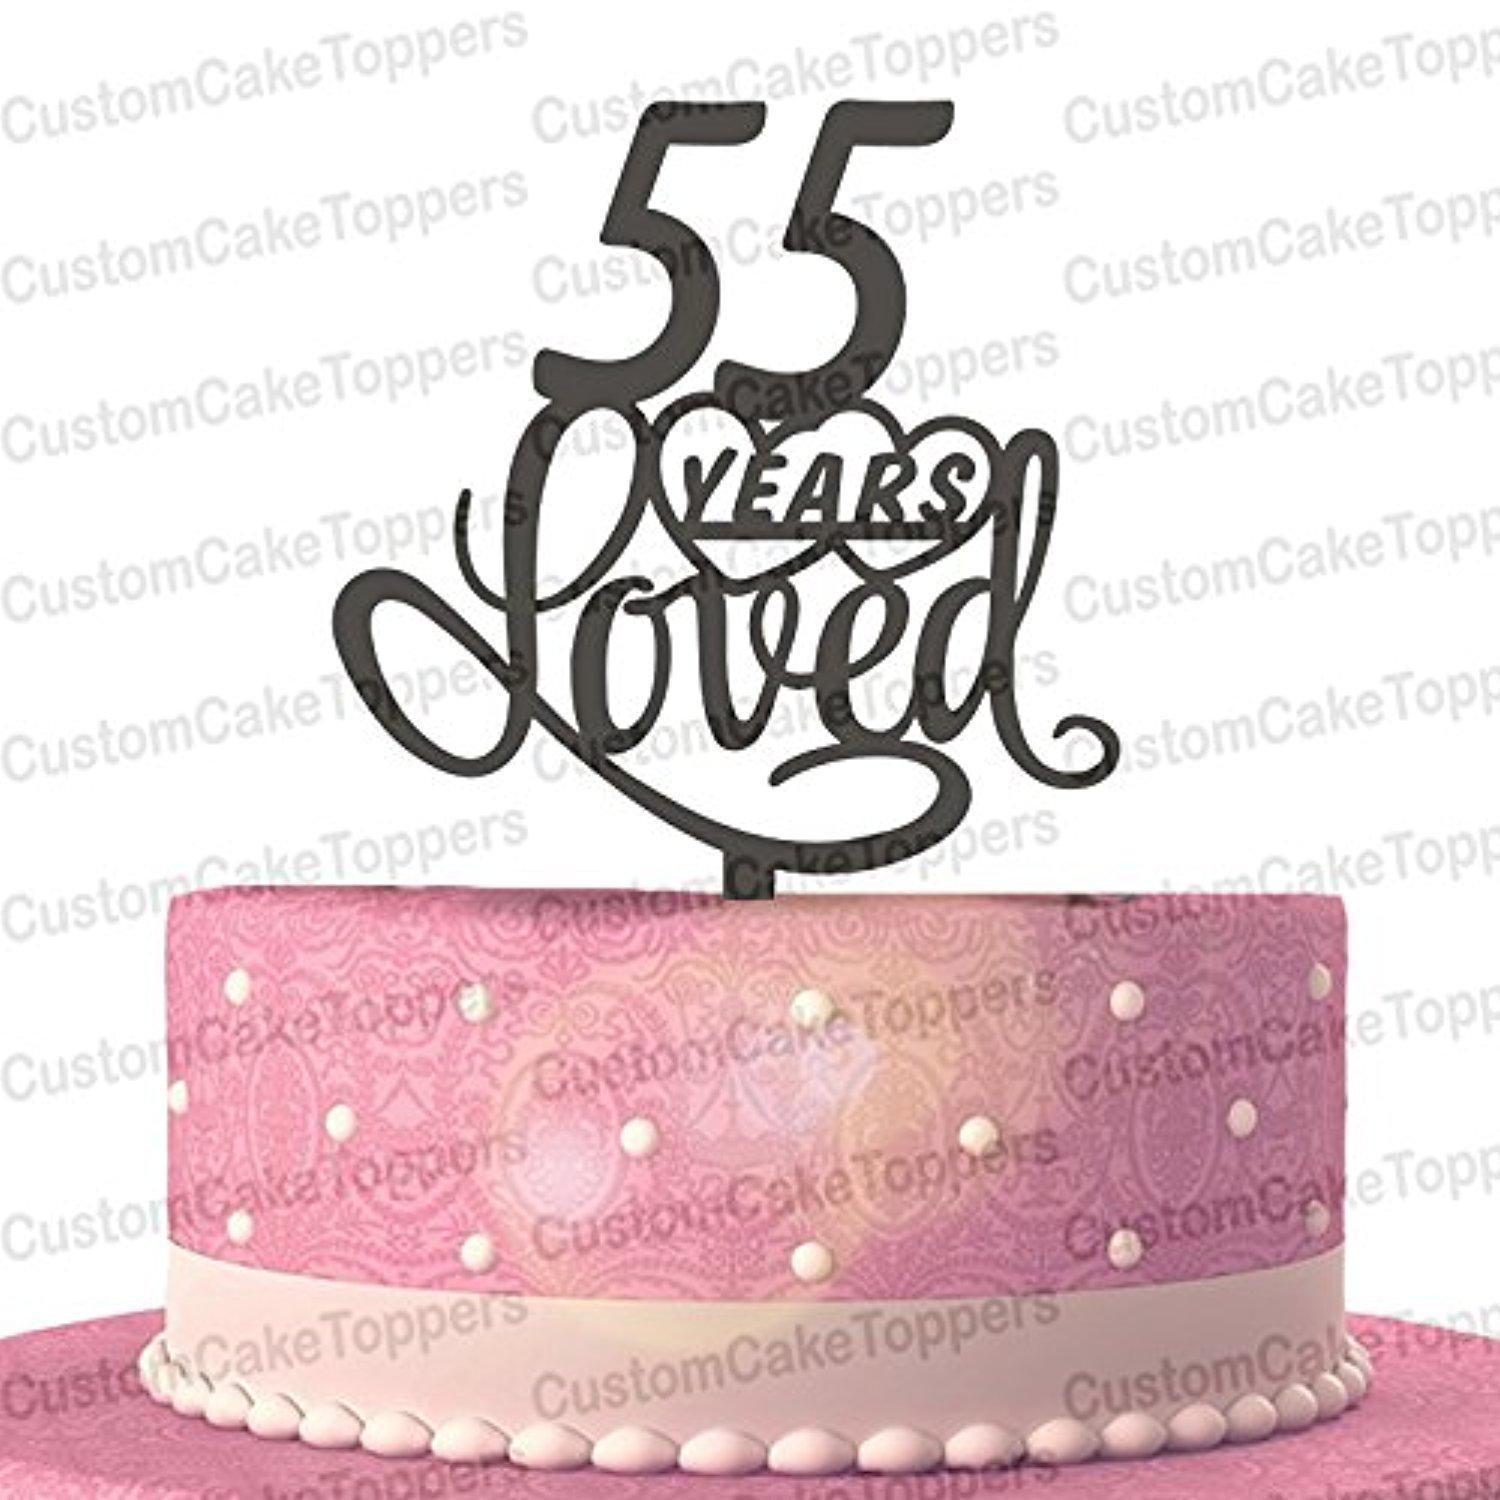 Online Store 55 Years Loved Cake Topper Classy 55th Birthday Cake